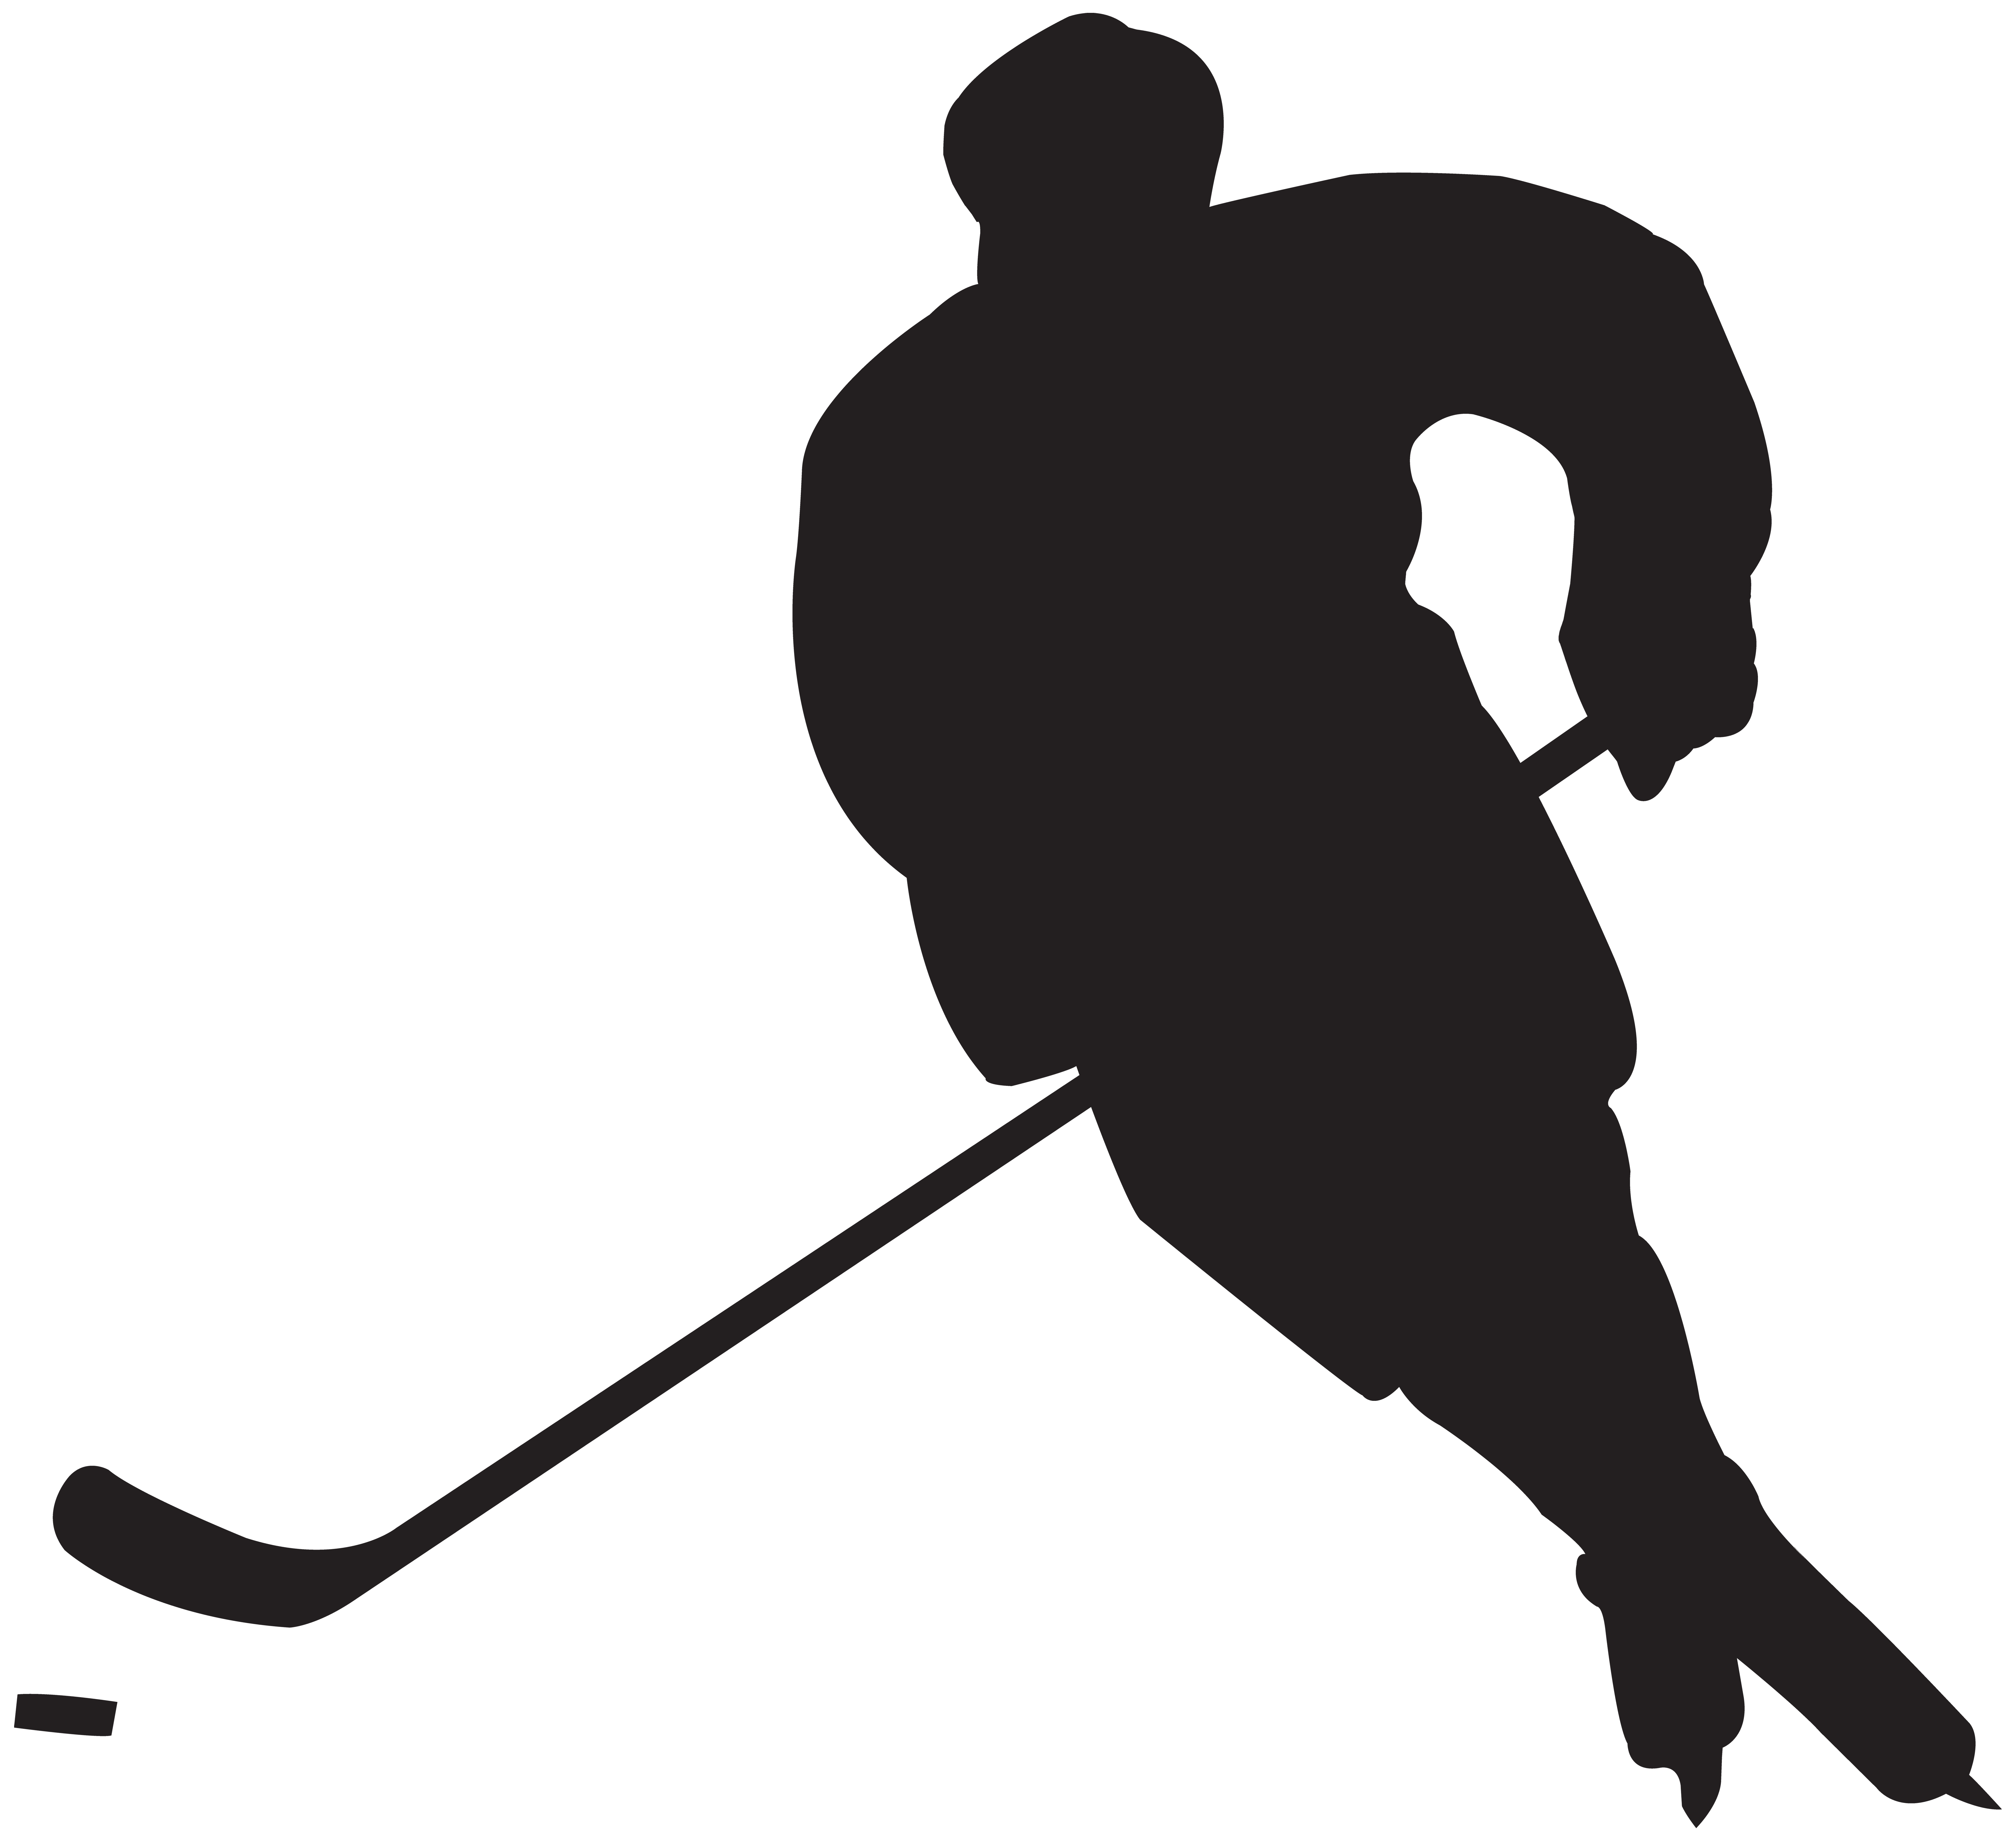 Hockey Player Silhouette Png Clip Art Gallery Yopriceville High Quality Images And Transparent Png Free Silhouette Clip Art Hockey Players Silhouette Png